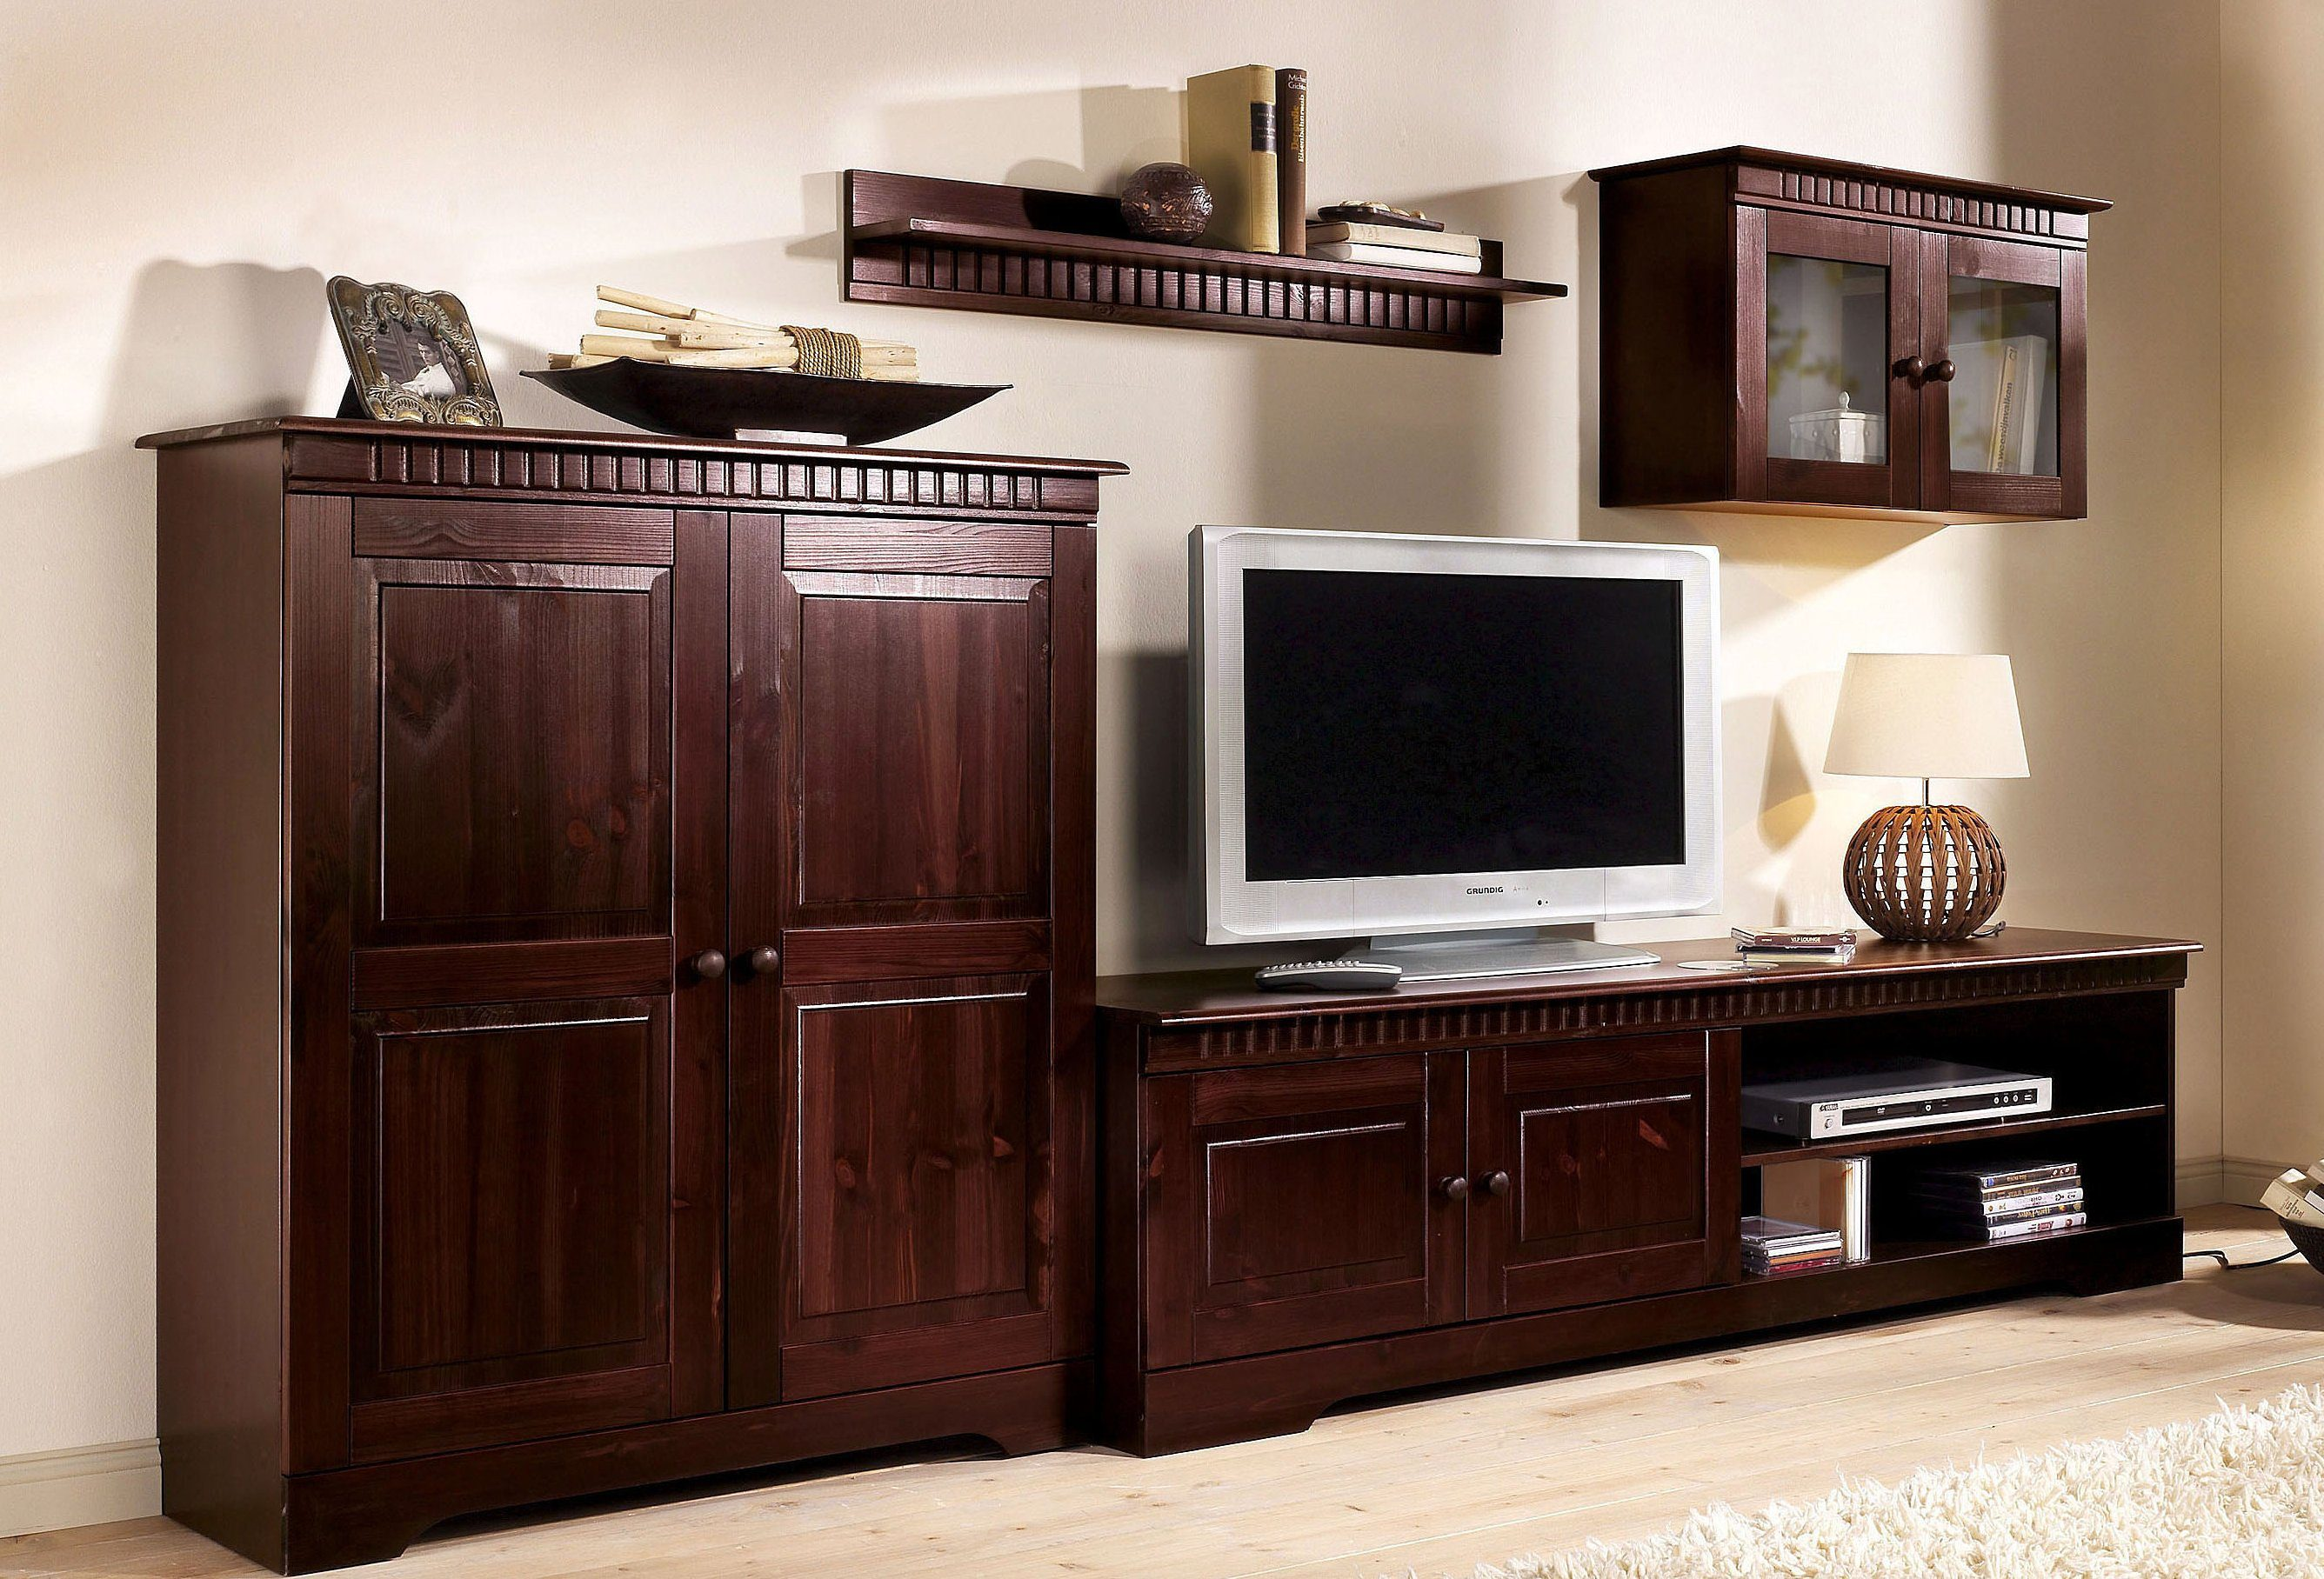 home affaire wohnwand braun braun wohnw nde zum. Black Bedroom Furniture Sets. Home Design Ideas